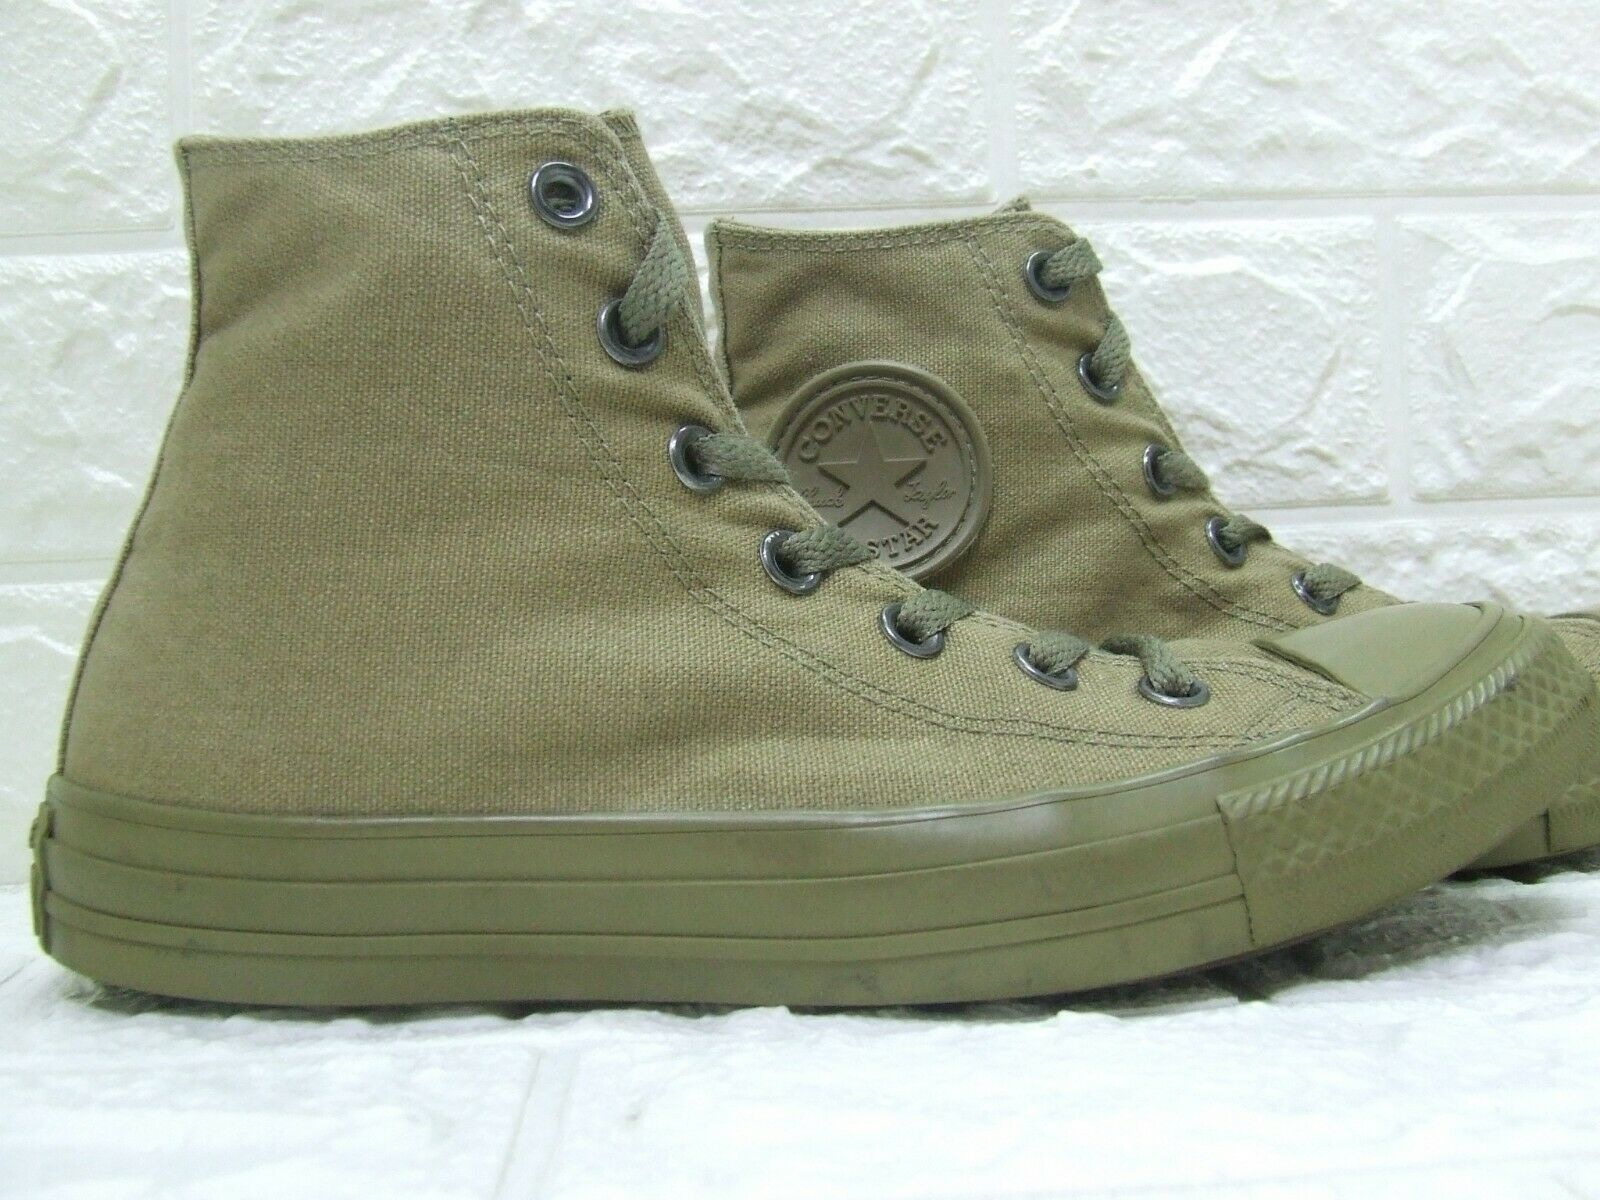 shoes Man Woman Vintage Converse all Star Size 5,5 - 38 (048)